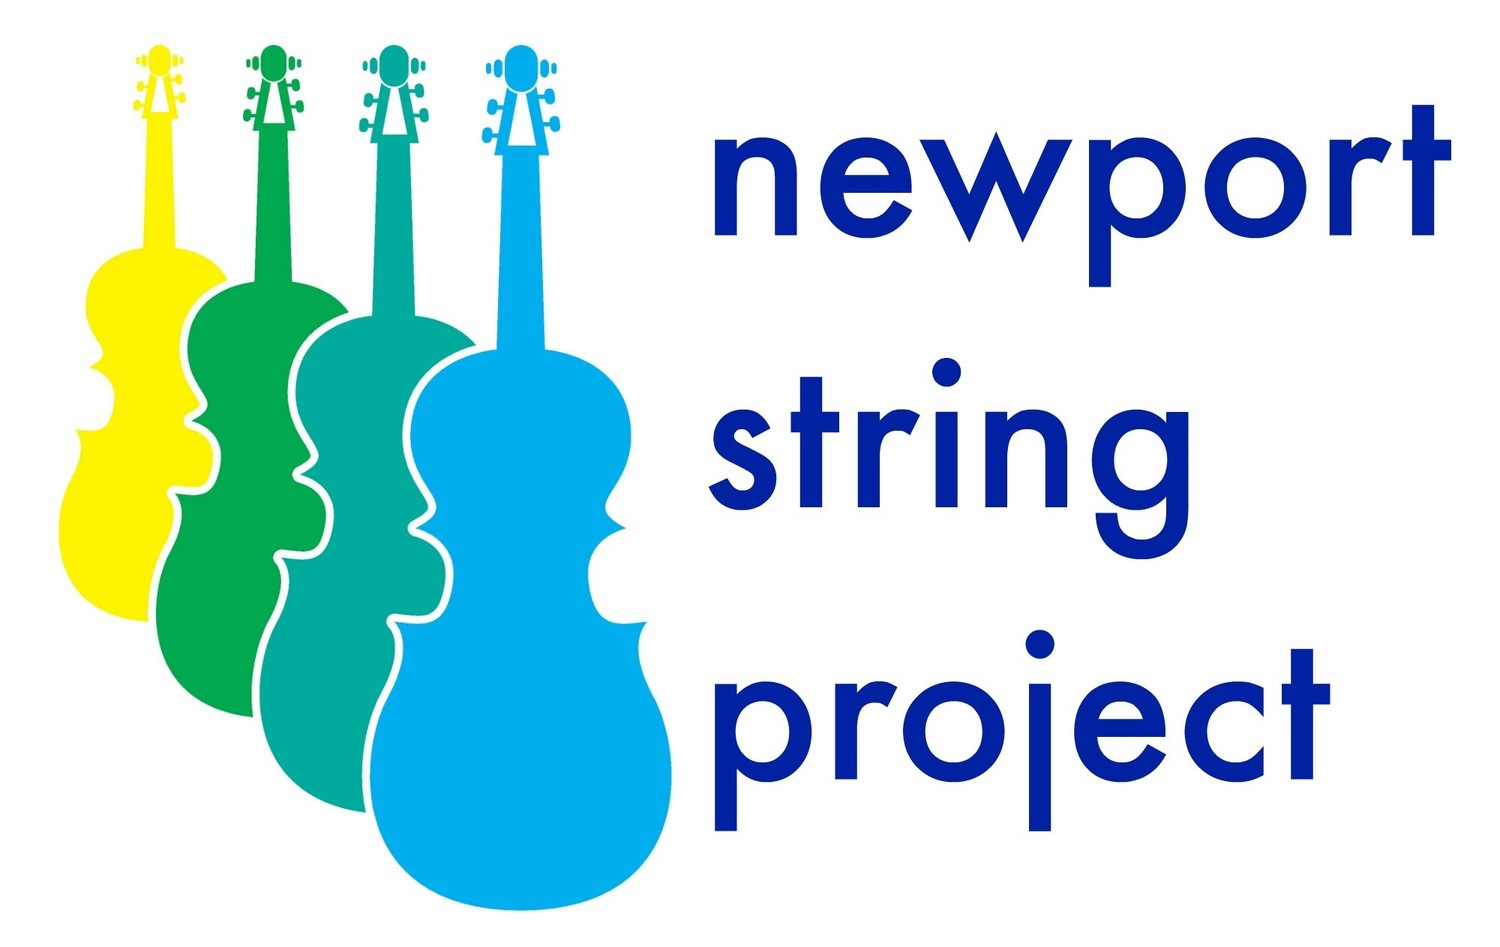 The Newport String Project